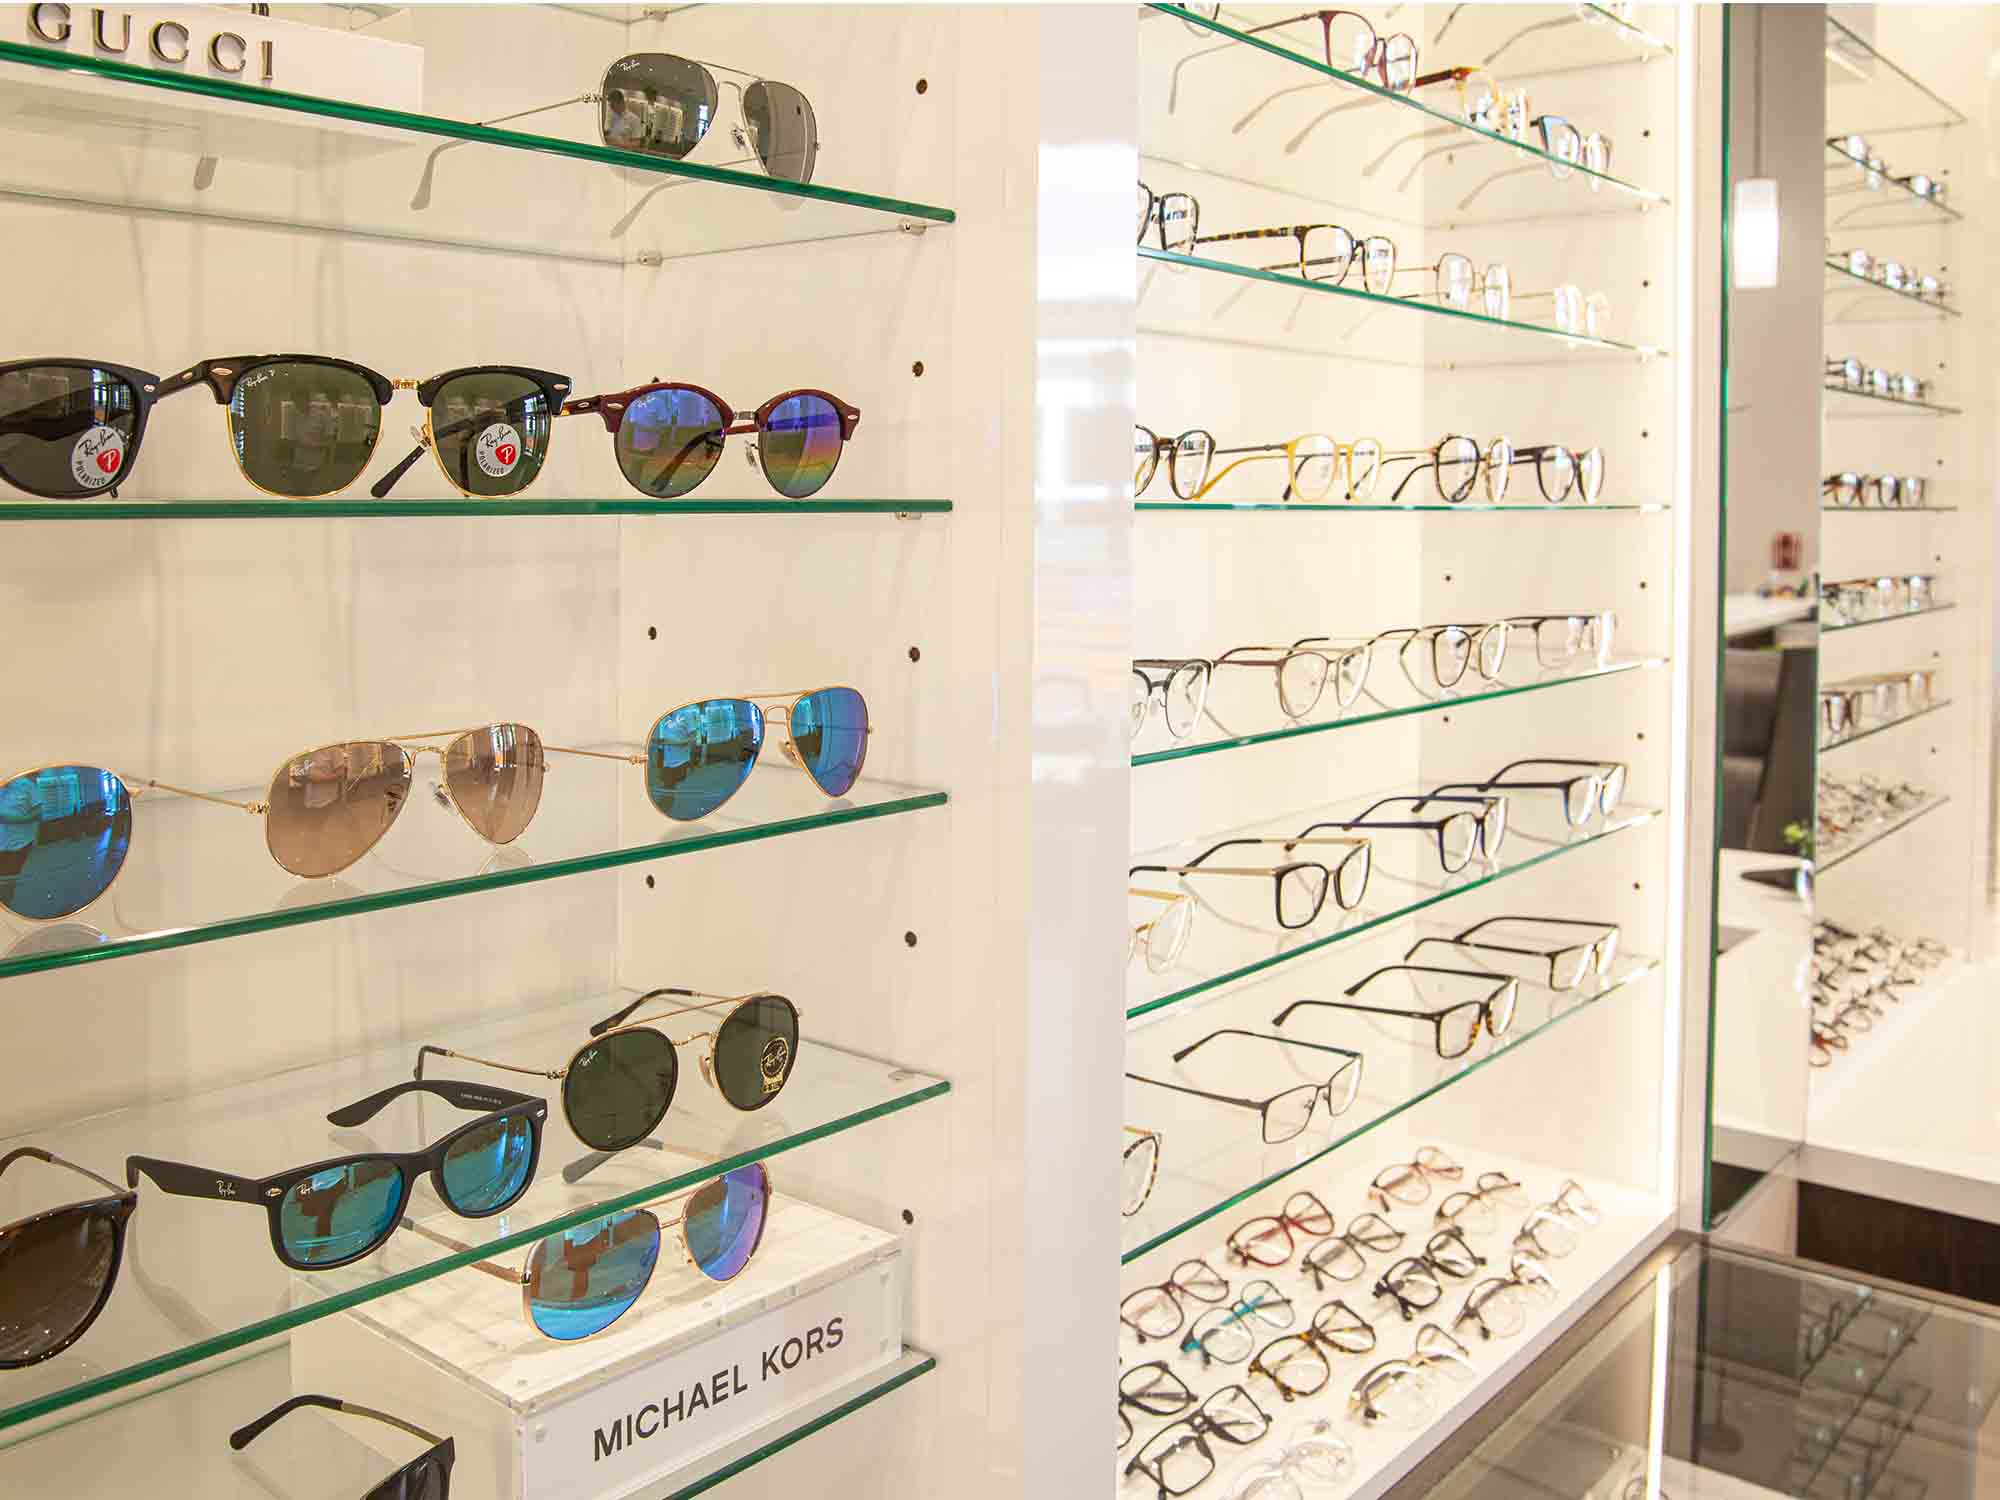 Marine View Optometry glasses and sunglasses